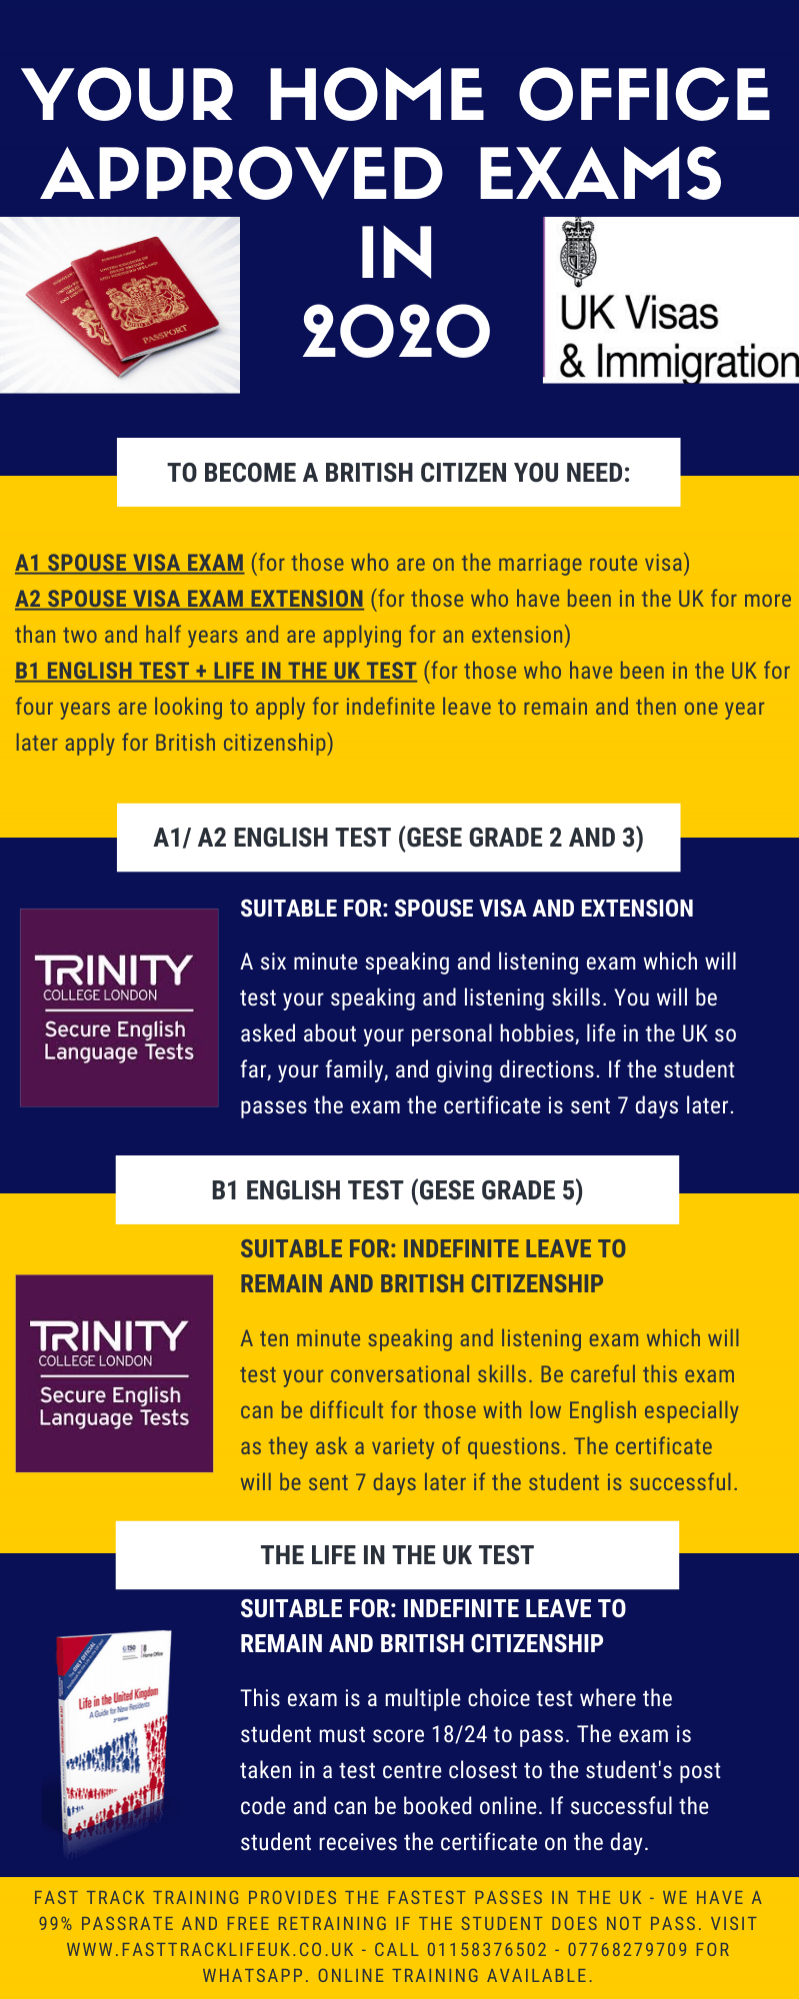 british citizenship exam training for the life in the uk test b1 english british citizenship infographic in 2020